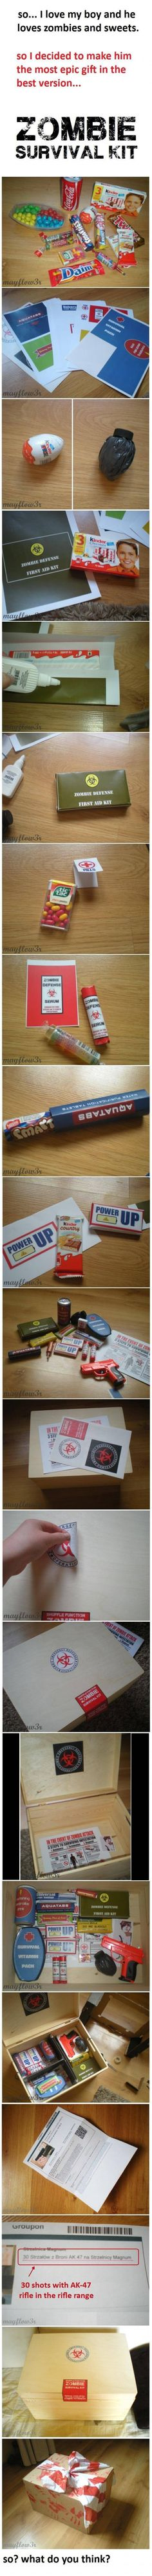 (Sweet) Zombie Survival Kit | That Quirkive Blog